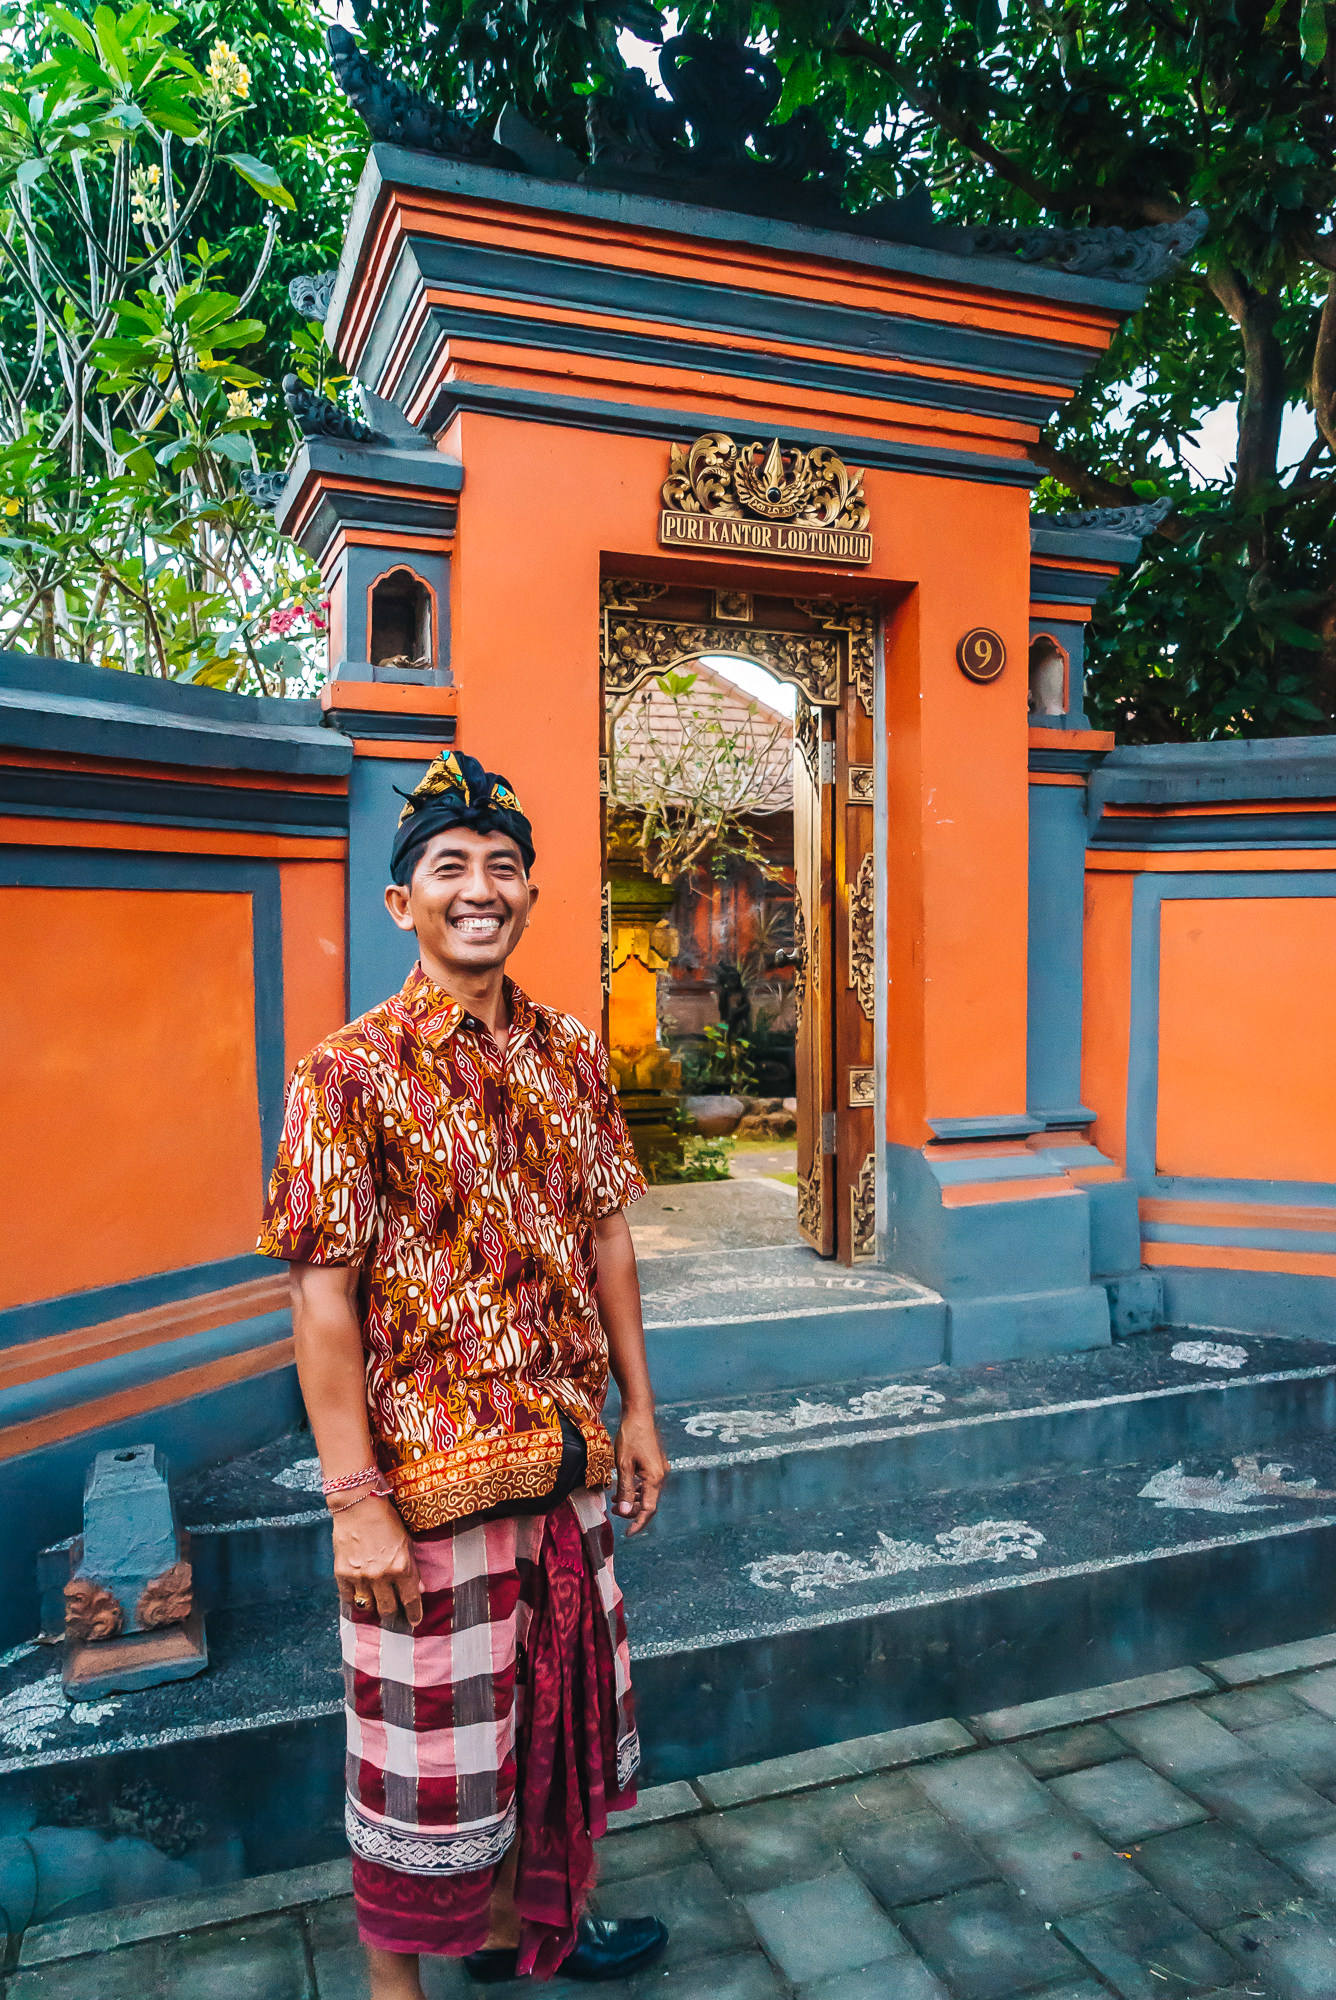 My new Balinese friend, Agung, in Ubud, Bali